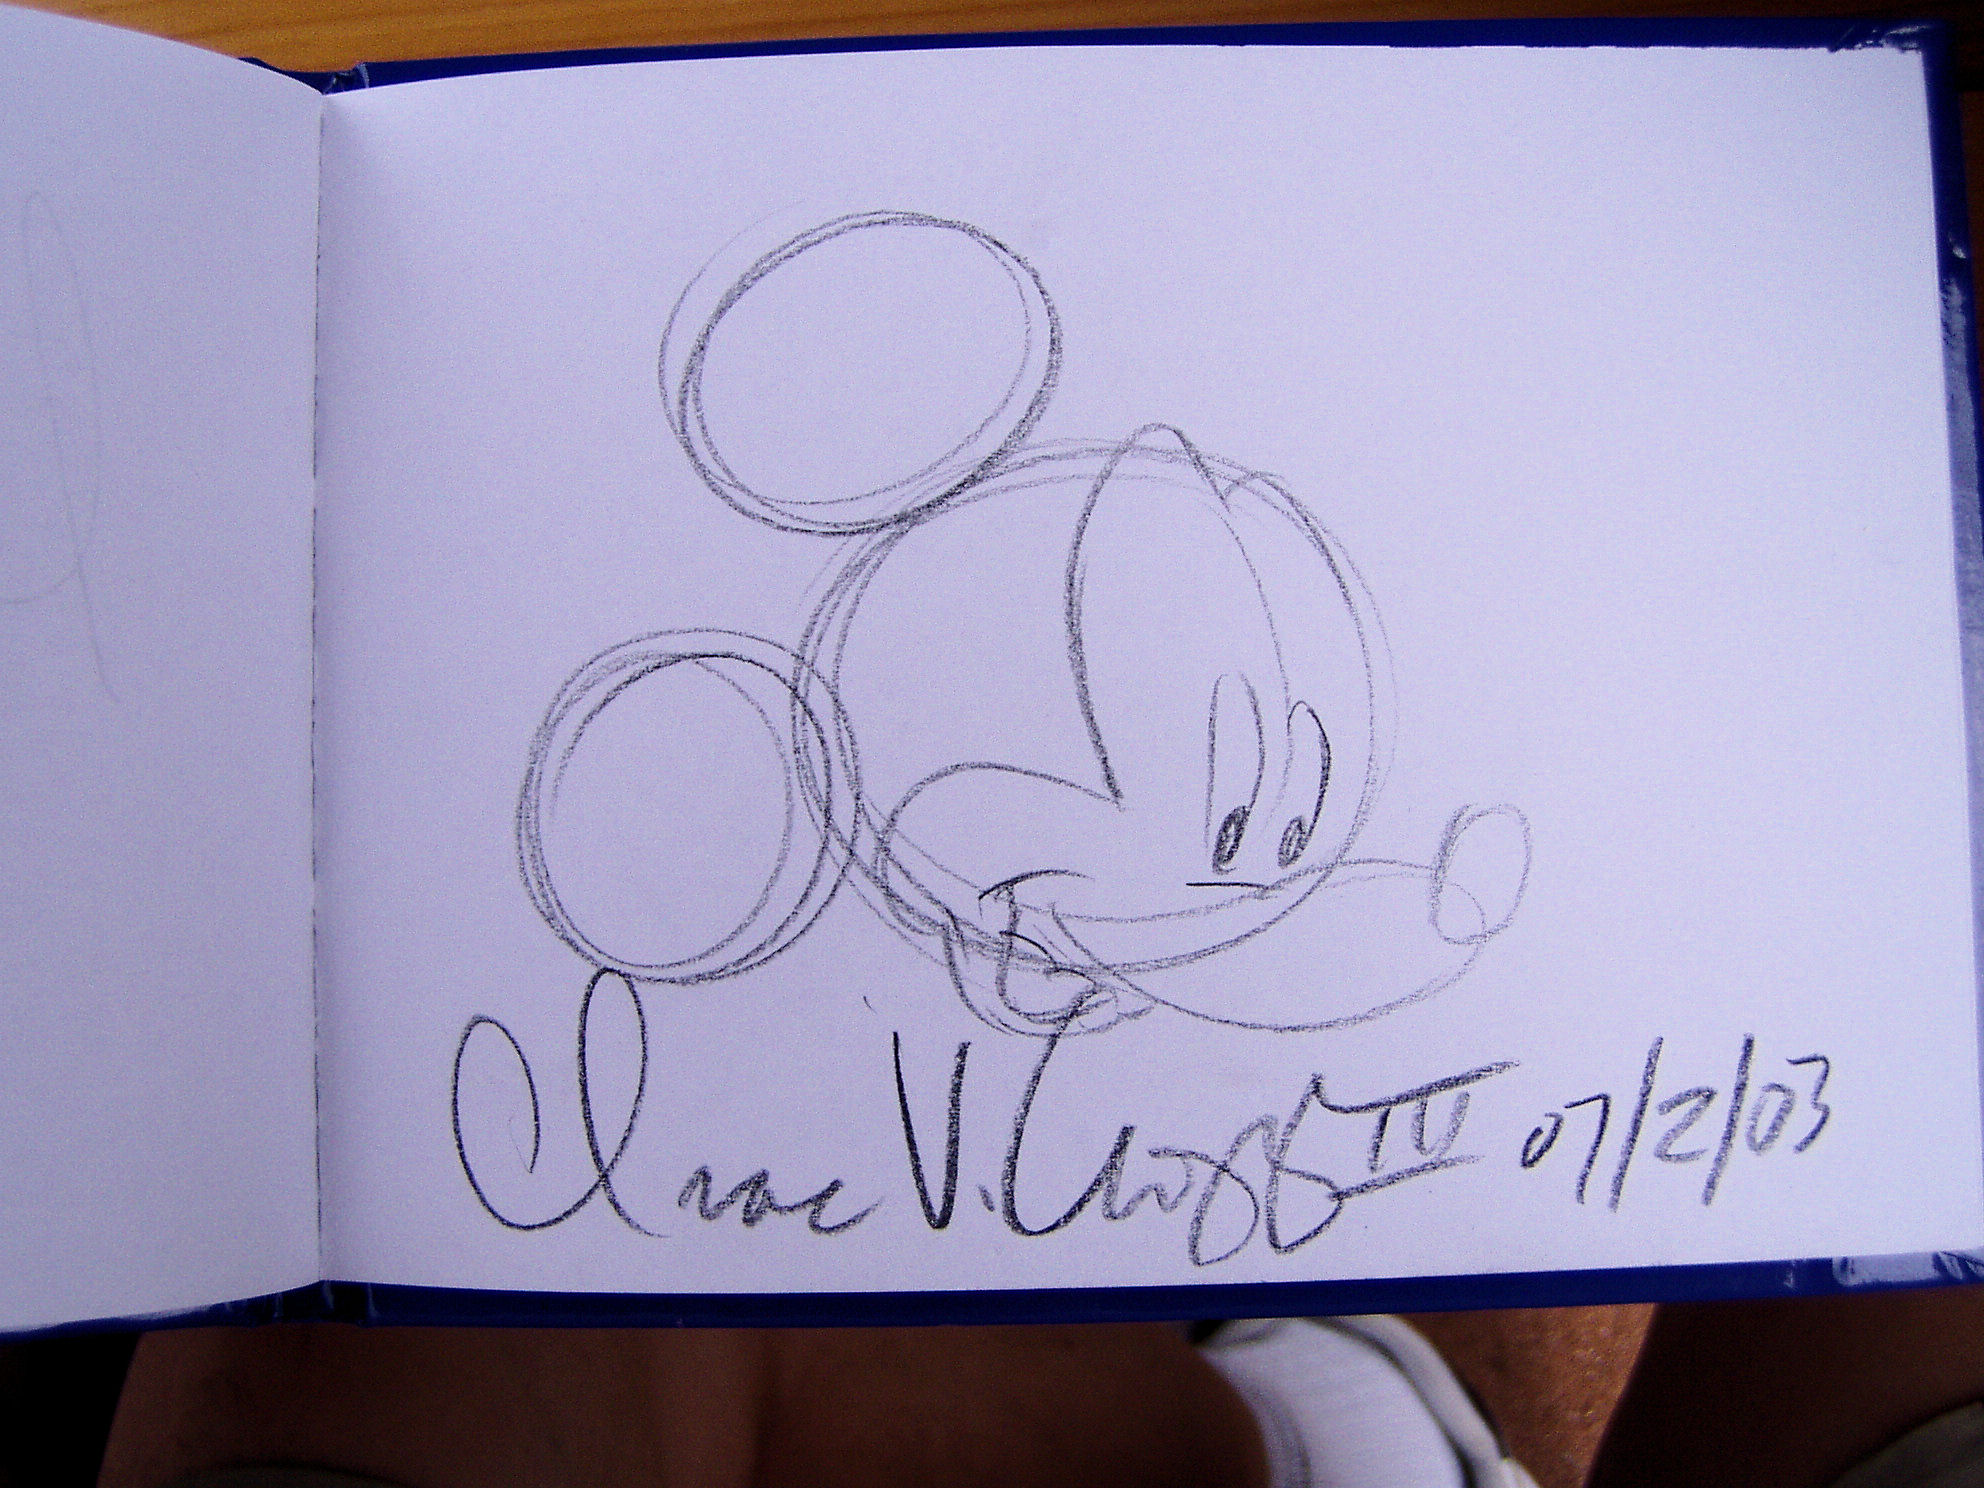 An autograph I got from a Disney animator.